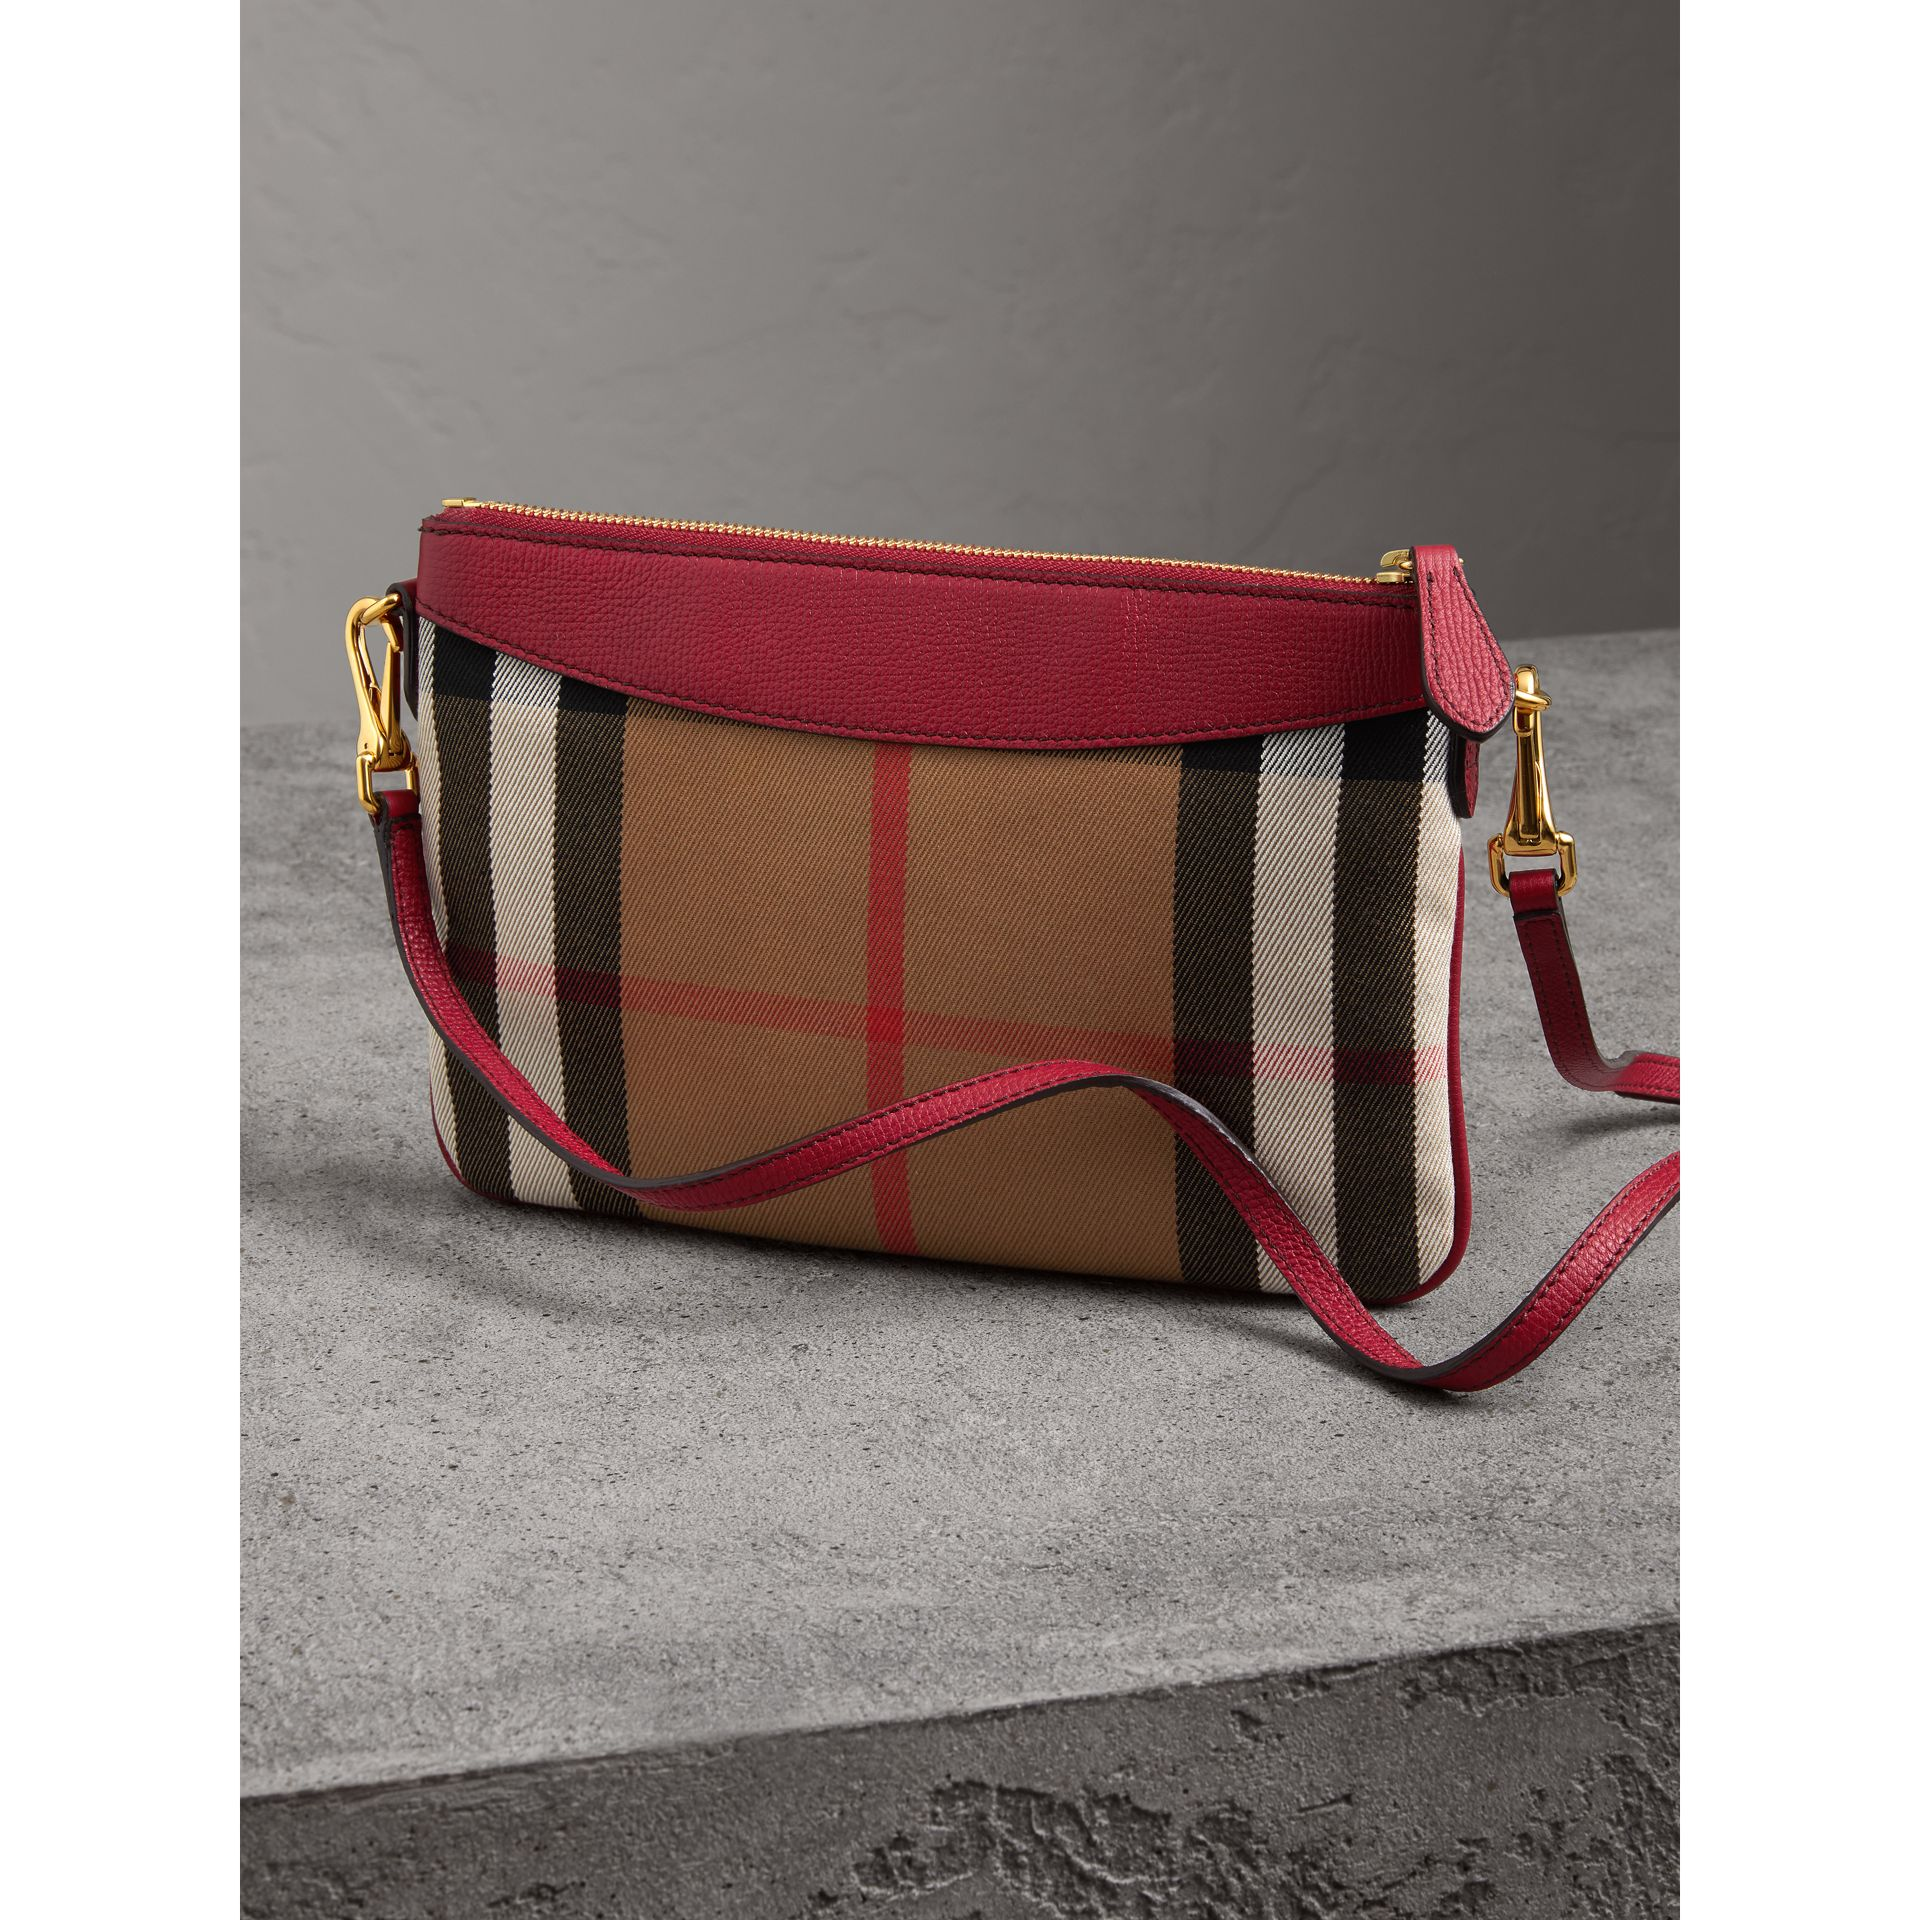 House Check and Leather Clutch Bag in Military Red - Women | Burberry - gallery image 3